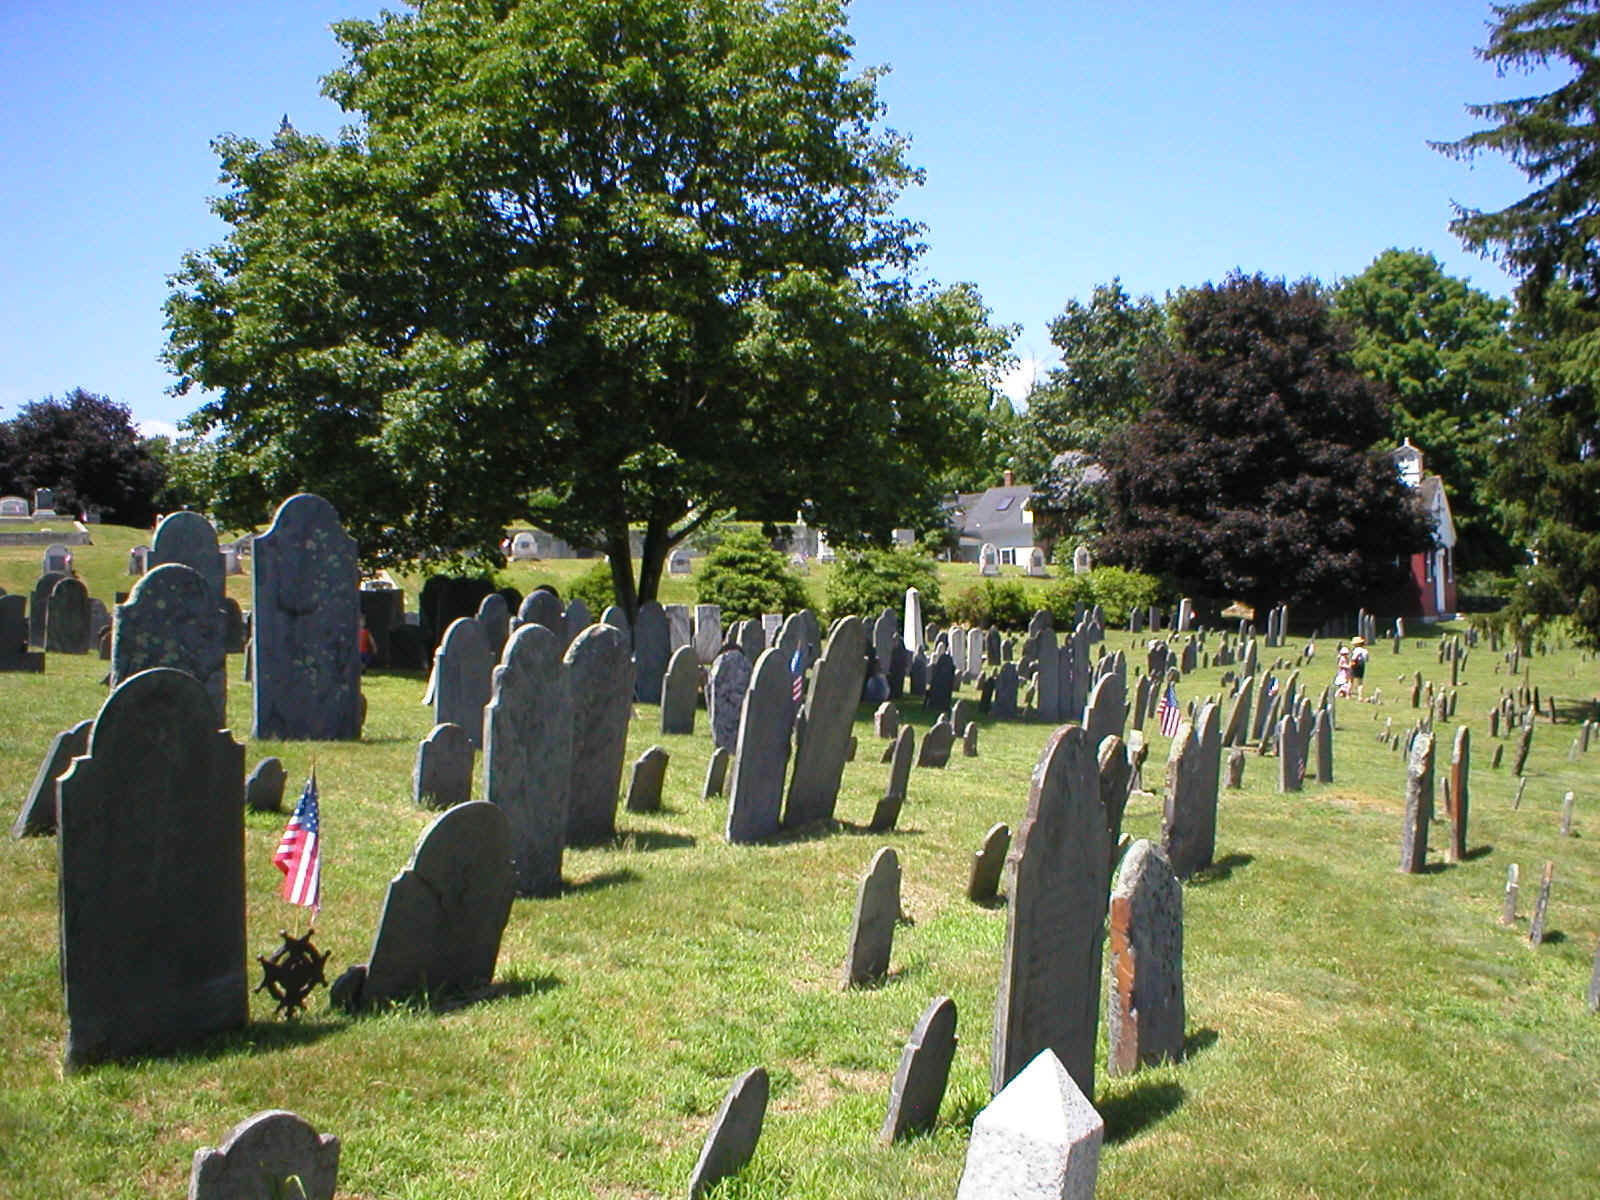 Forefathers Burying Ground